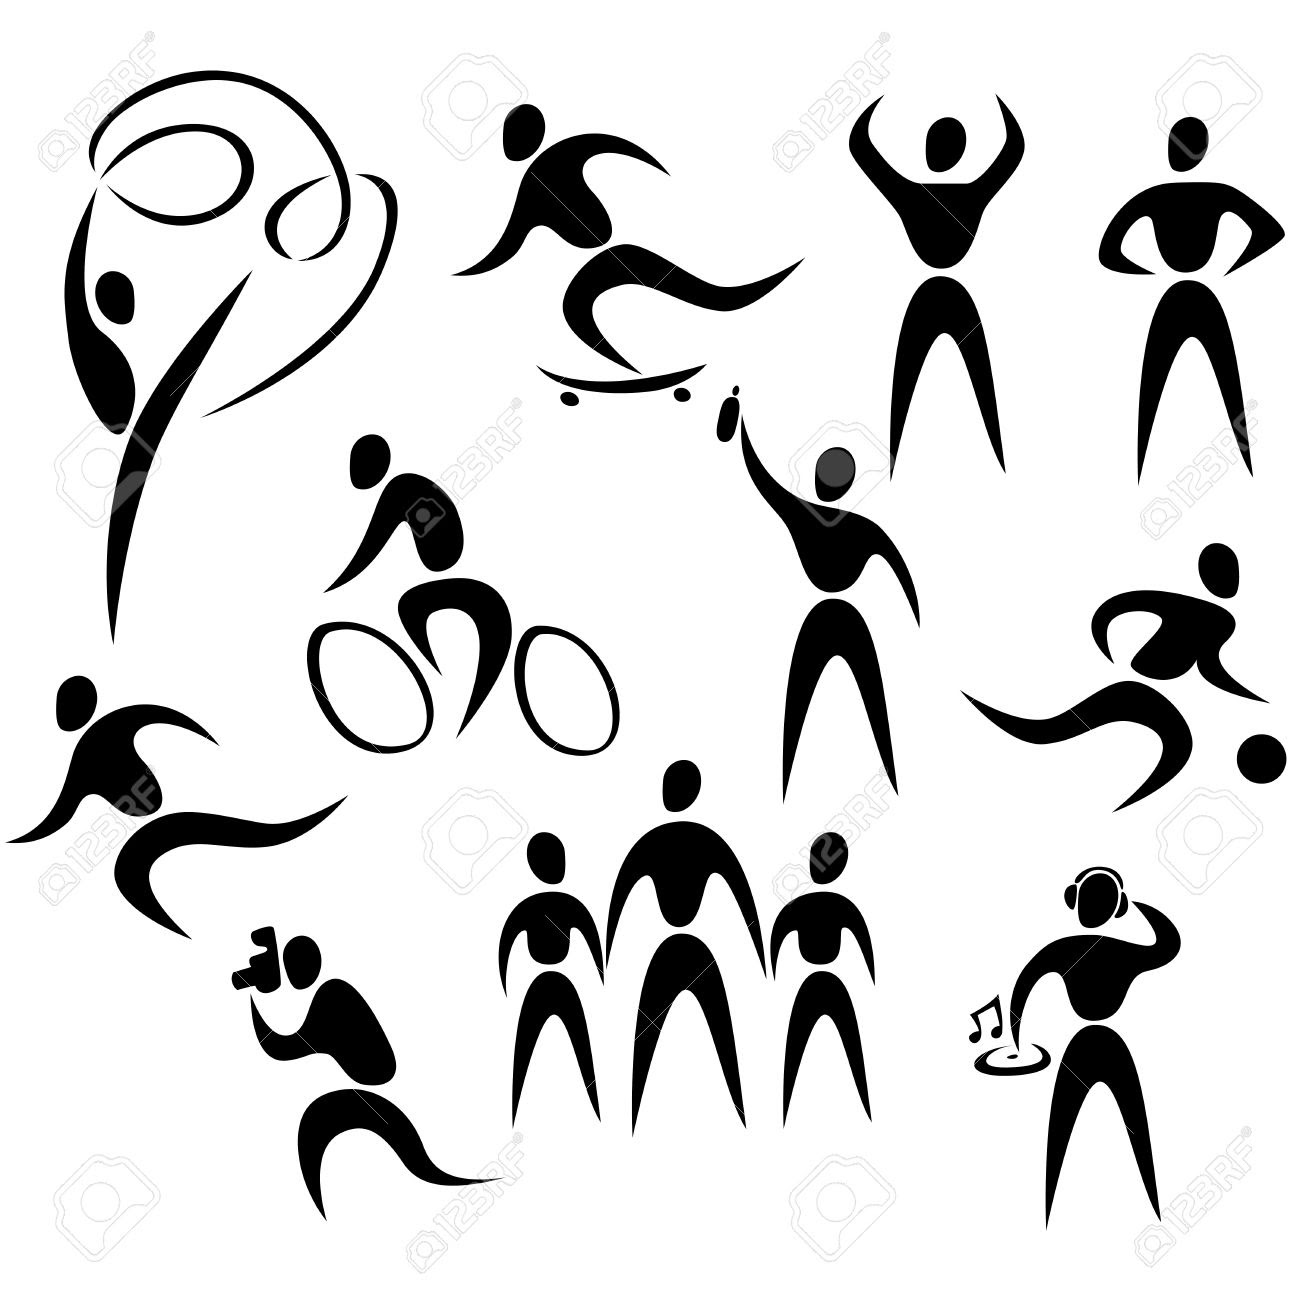 http://previews.123rf.com/images/leedsn/leedsn1203/leedsn120300027/12746024-Vector-icons-of-active-healthy-people-Stock-Vector-running-silhouette-healthy.jpg